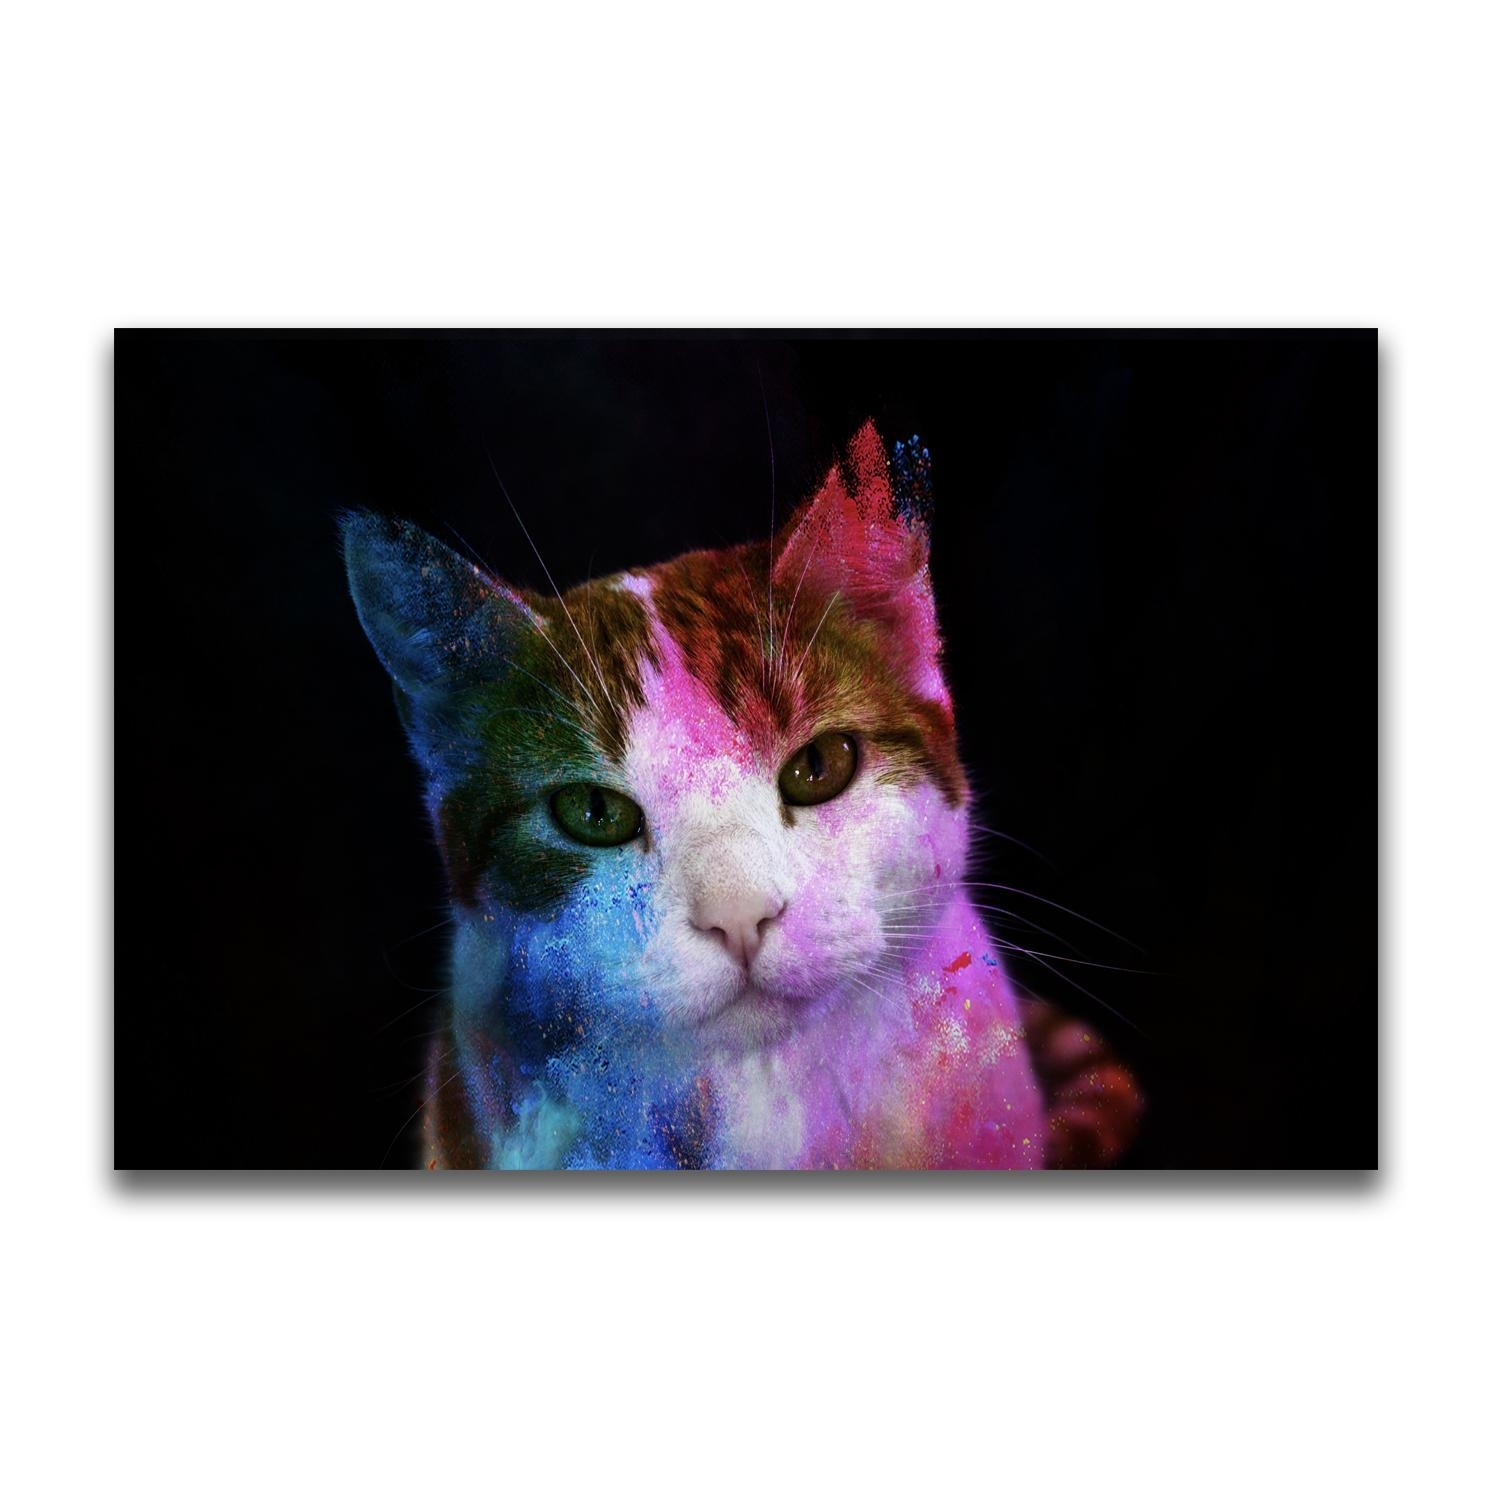 2018 Yj Art A Colorful Cat Unframed Modern Canvas Wall Art For Home In Newest Cat Canvas Wall Art (View 7 of 20)